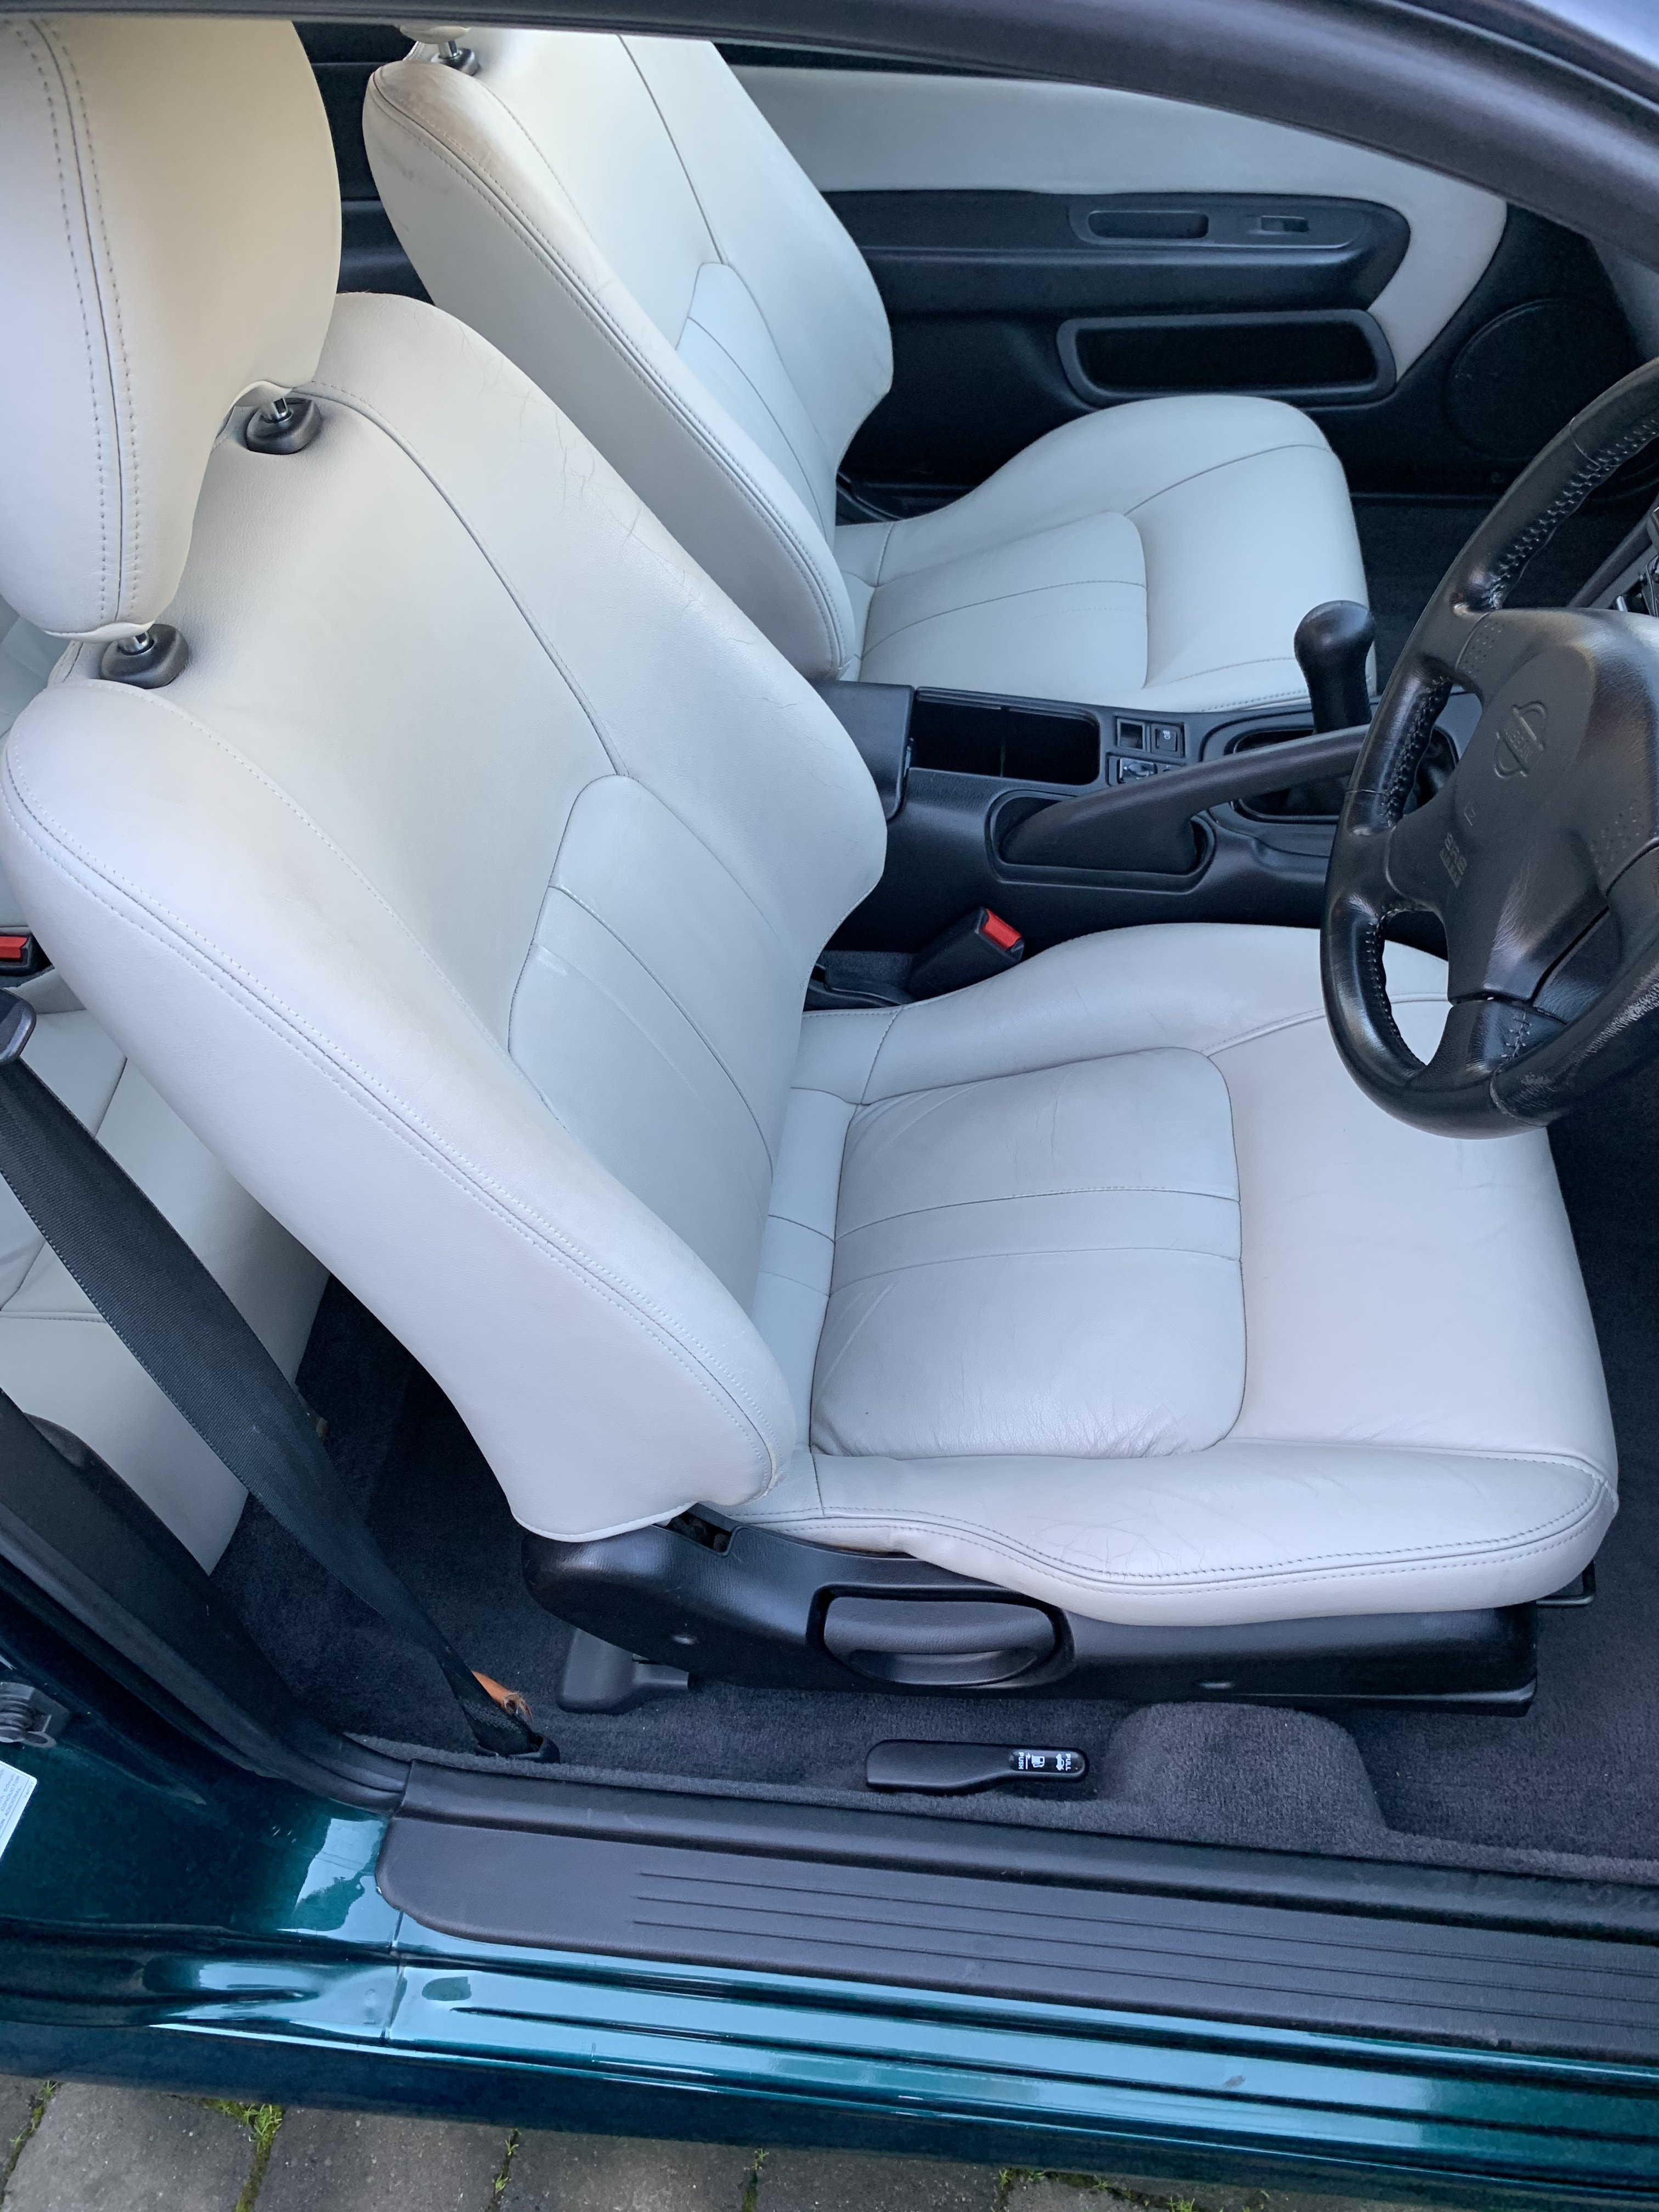 2000 Nissan 200sx 1 owner For Sale (picture 3 of 6)